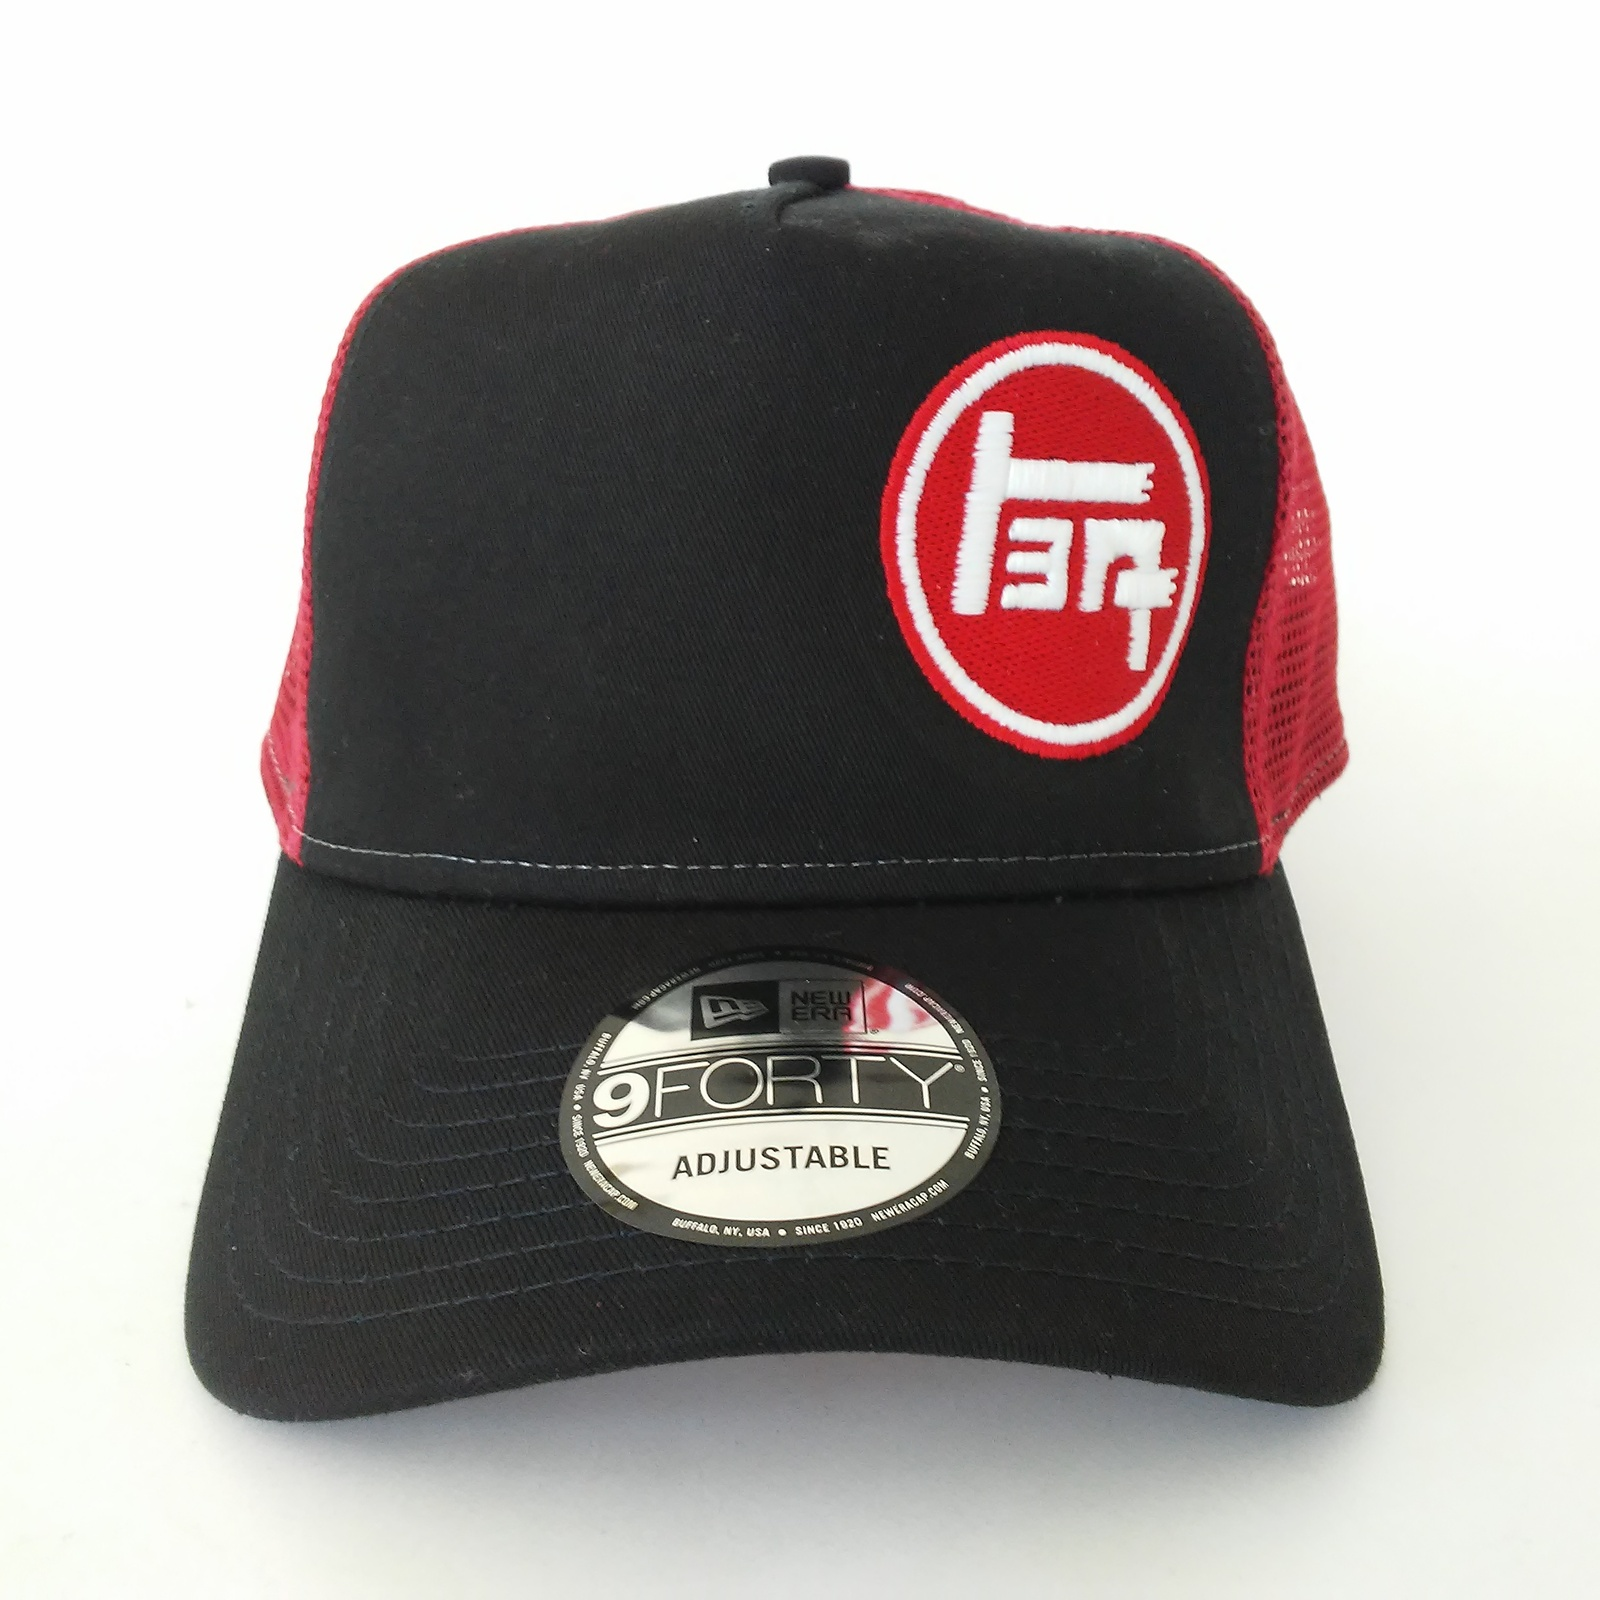 26d43f4a594 20170404 142240. 20170404 142240. New Era 9forty TACOMA TEQ TOYOTA VINTAGE  BLACK RED TRUCKER HAT CAP SNAPBACK